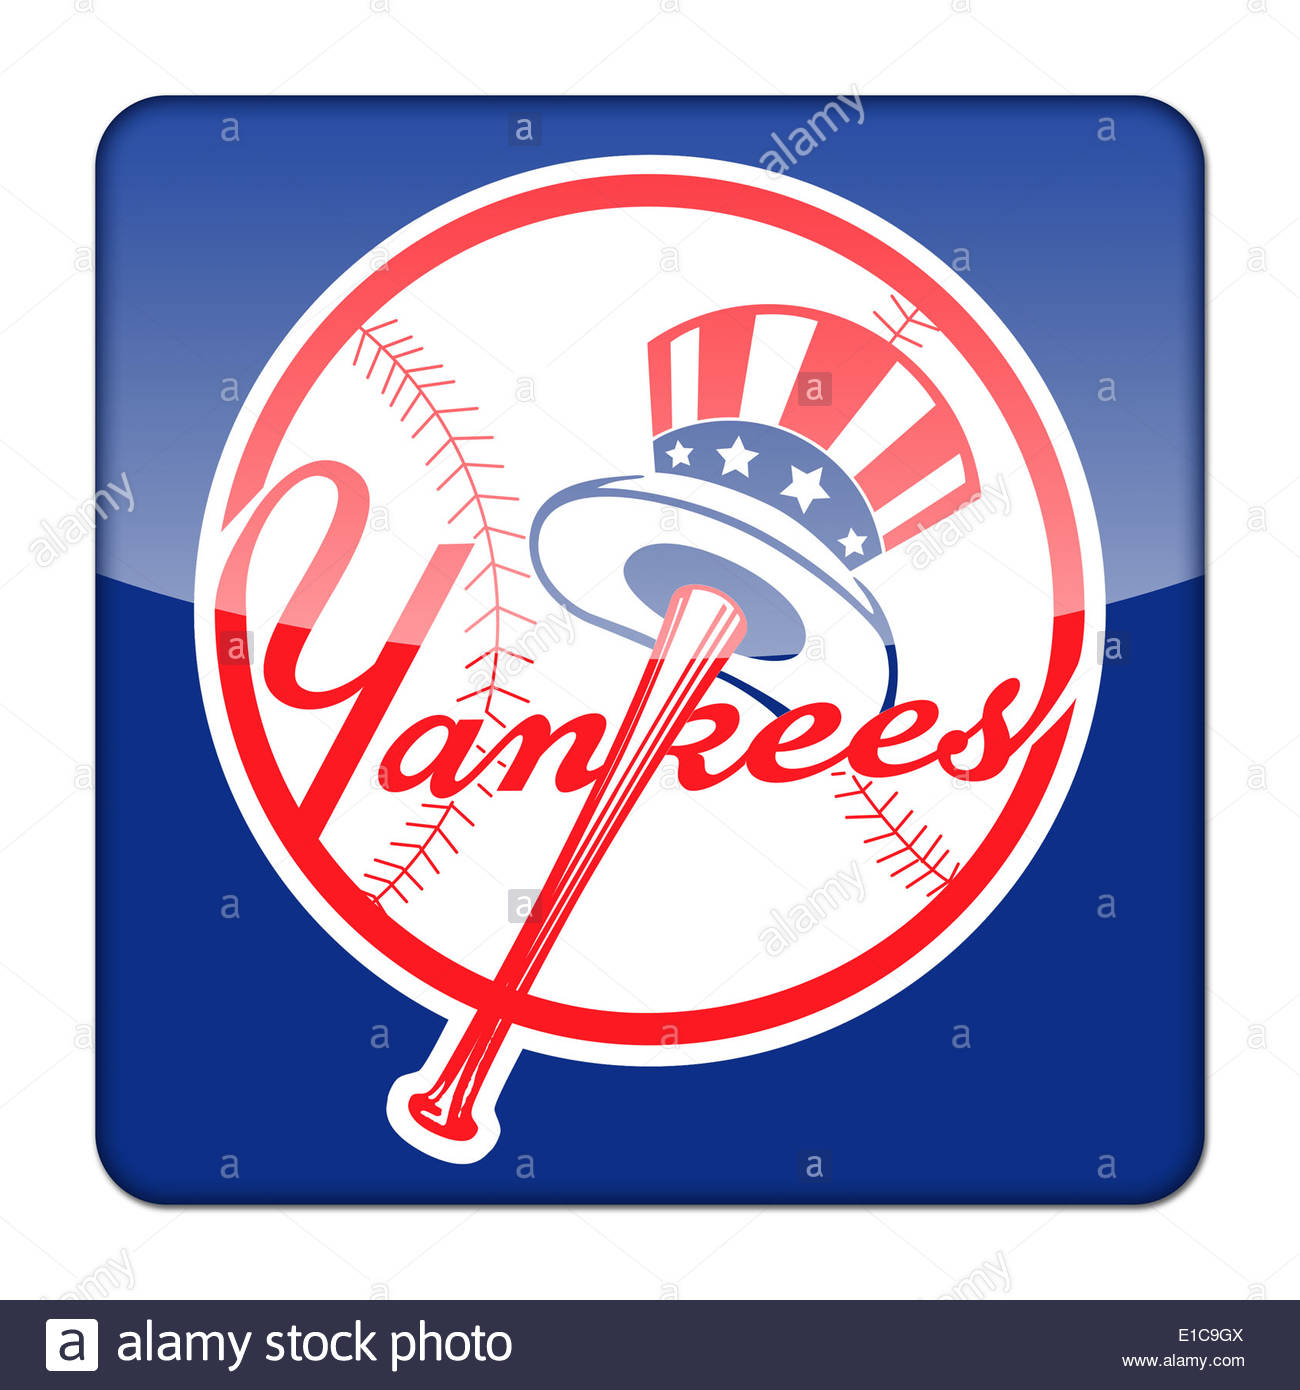 New york yankees icon logo isolated app button stock photo 69727050 new york yankees icon logo isolated app button stock photo biocorpaavc Image collections